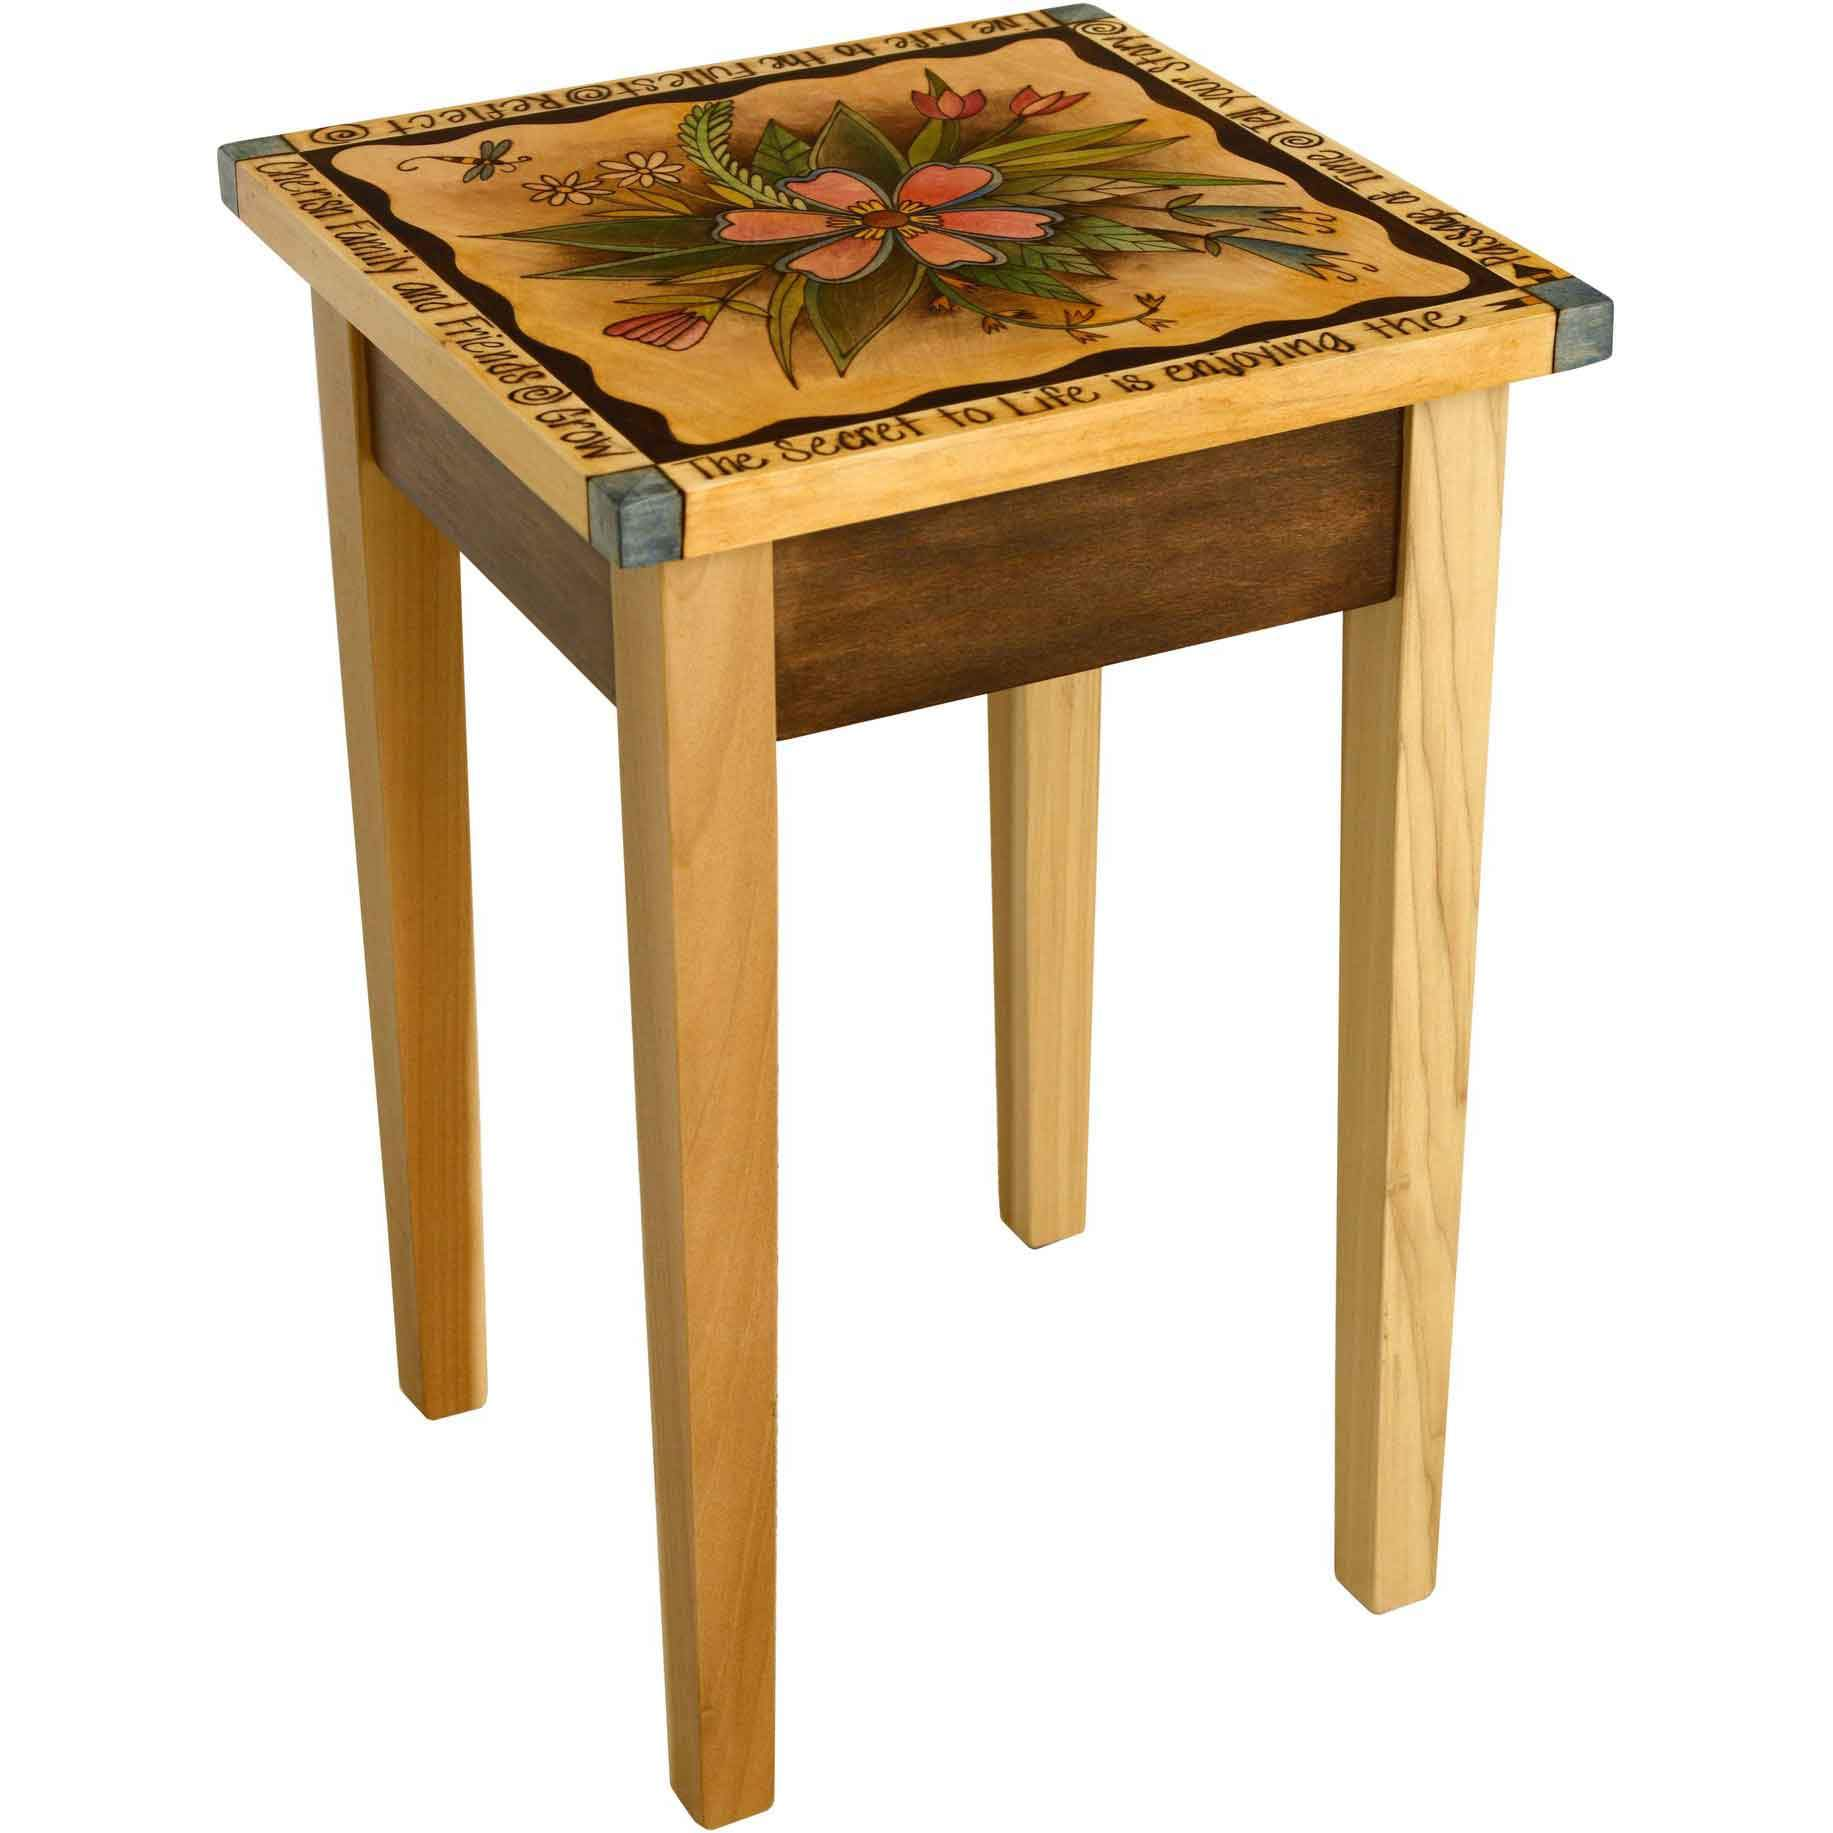 Sticks Small Square End Table End016 01033 Artistic Artisan Designer End Tables Sweetheart Gallery Contemporary Craft Gallery Fine American Craft Art Design Handmade Home Personal Accessories